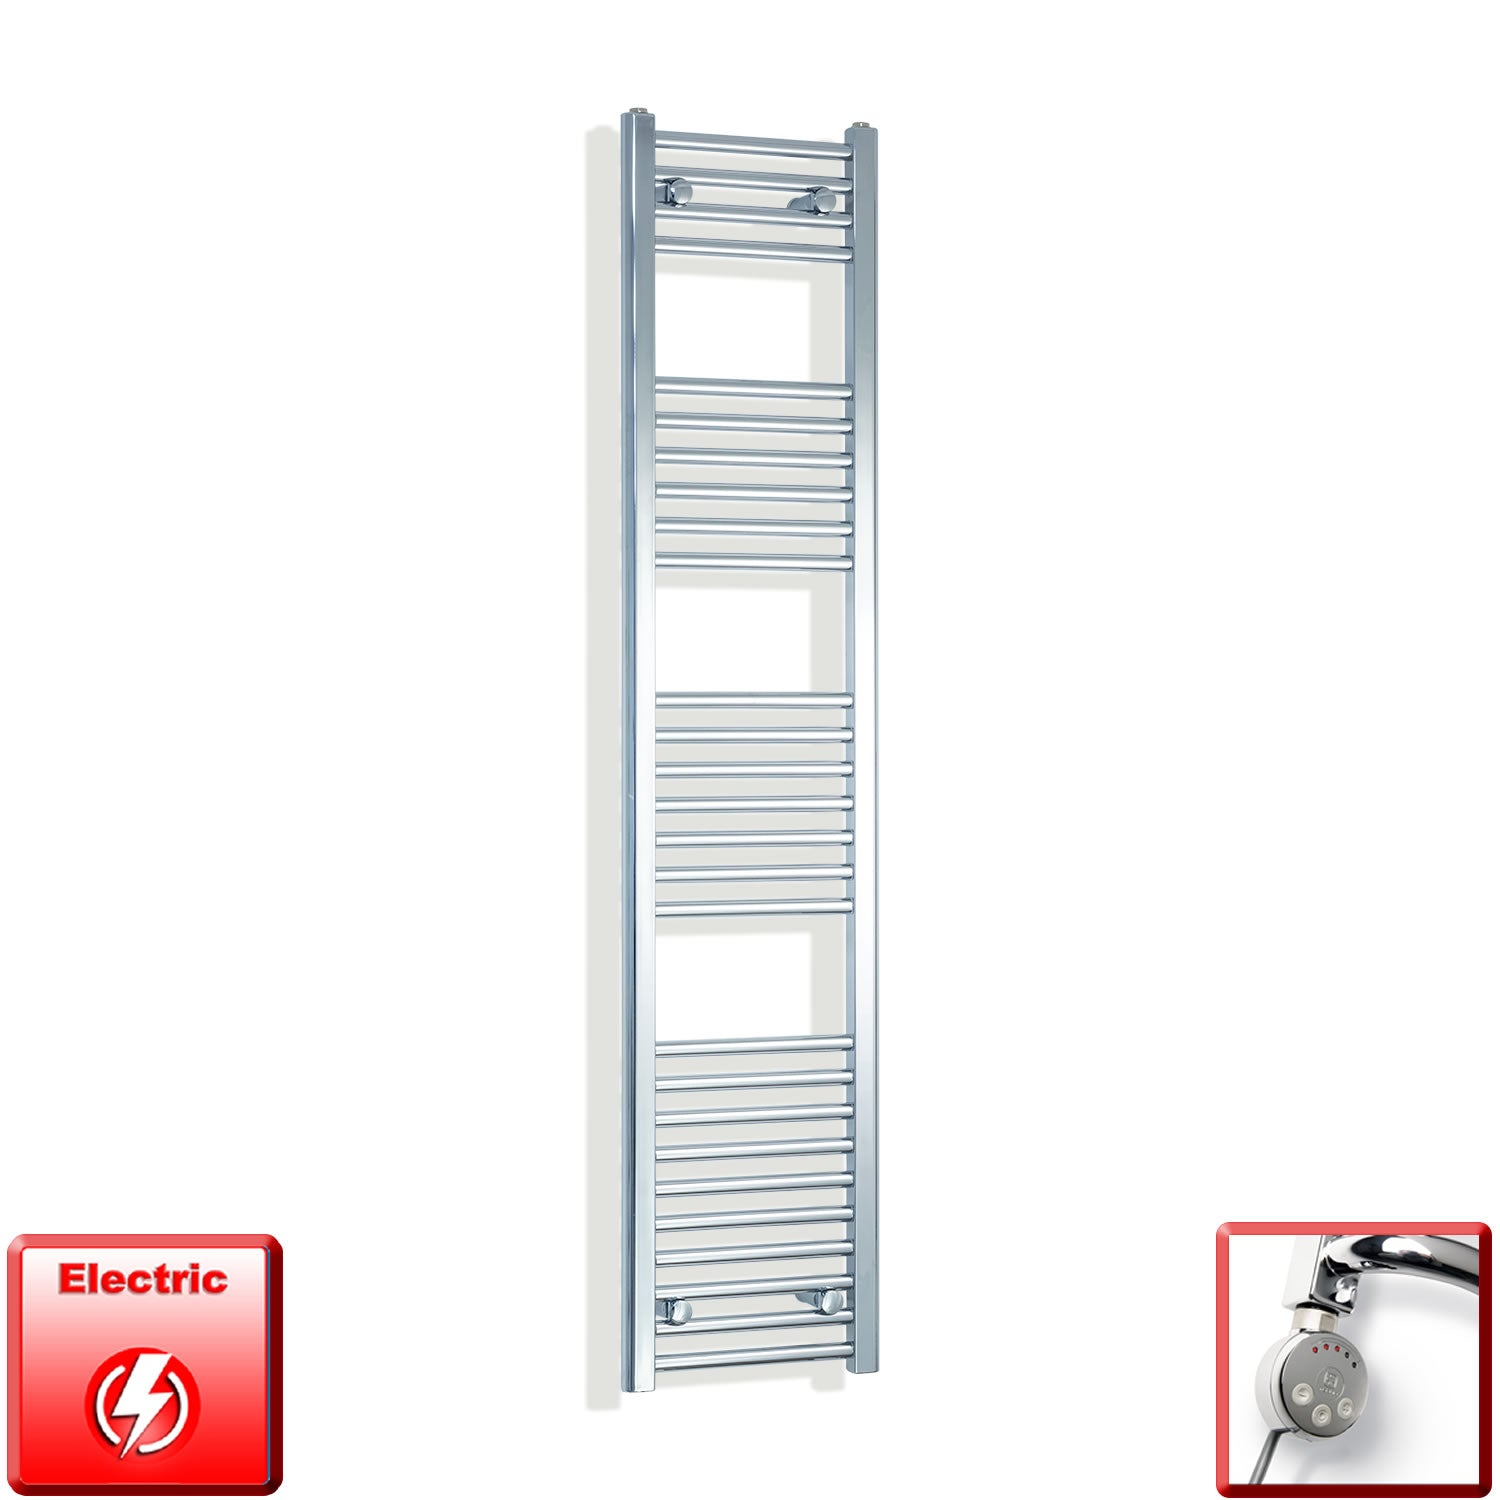 350mm Wide 1600mm High Pre-Filled Chrome Electric Towel Rail Radiator With Thermostatic MEG Element